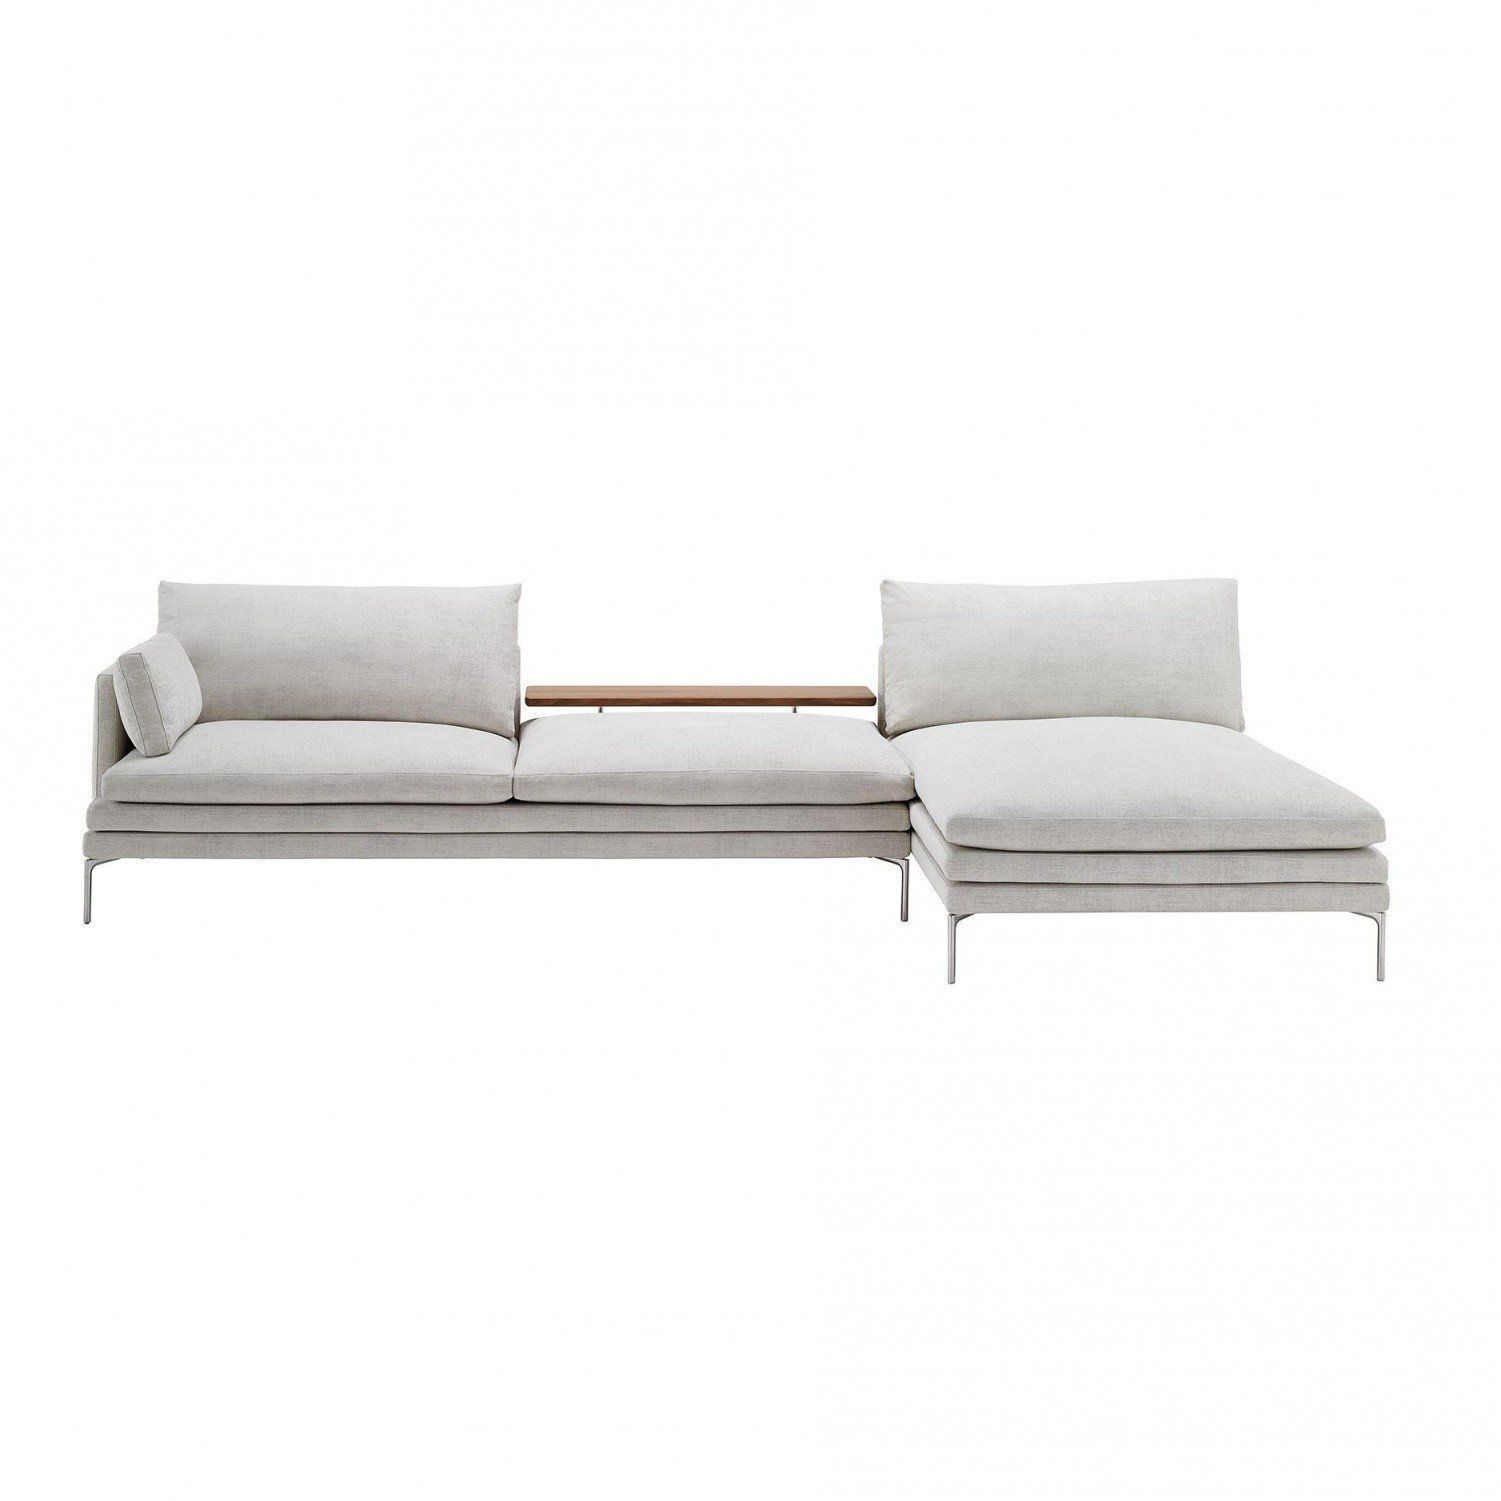 corner atlanta chaise and home sofas longue with sofa longues en chaises kave seater image